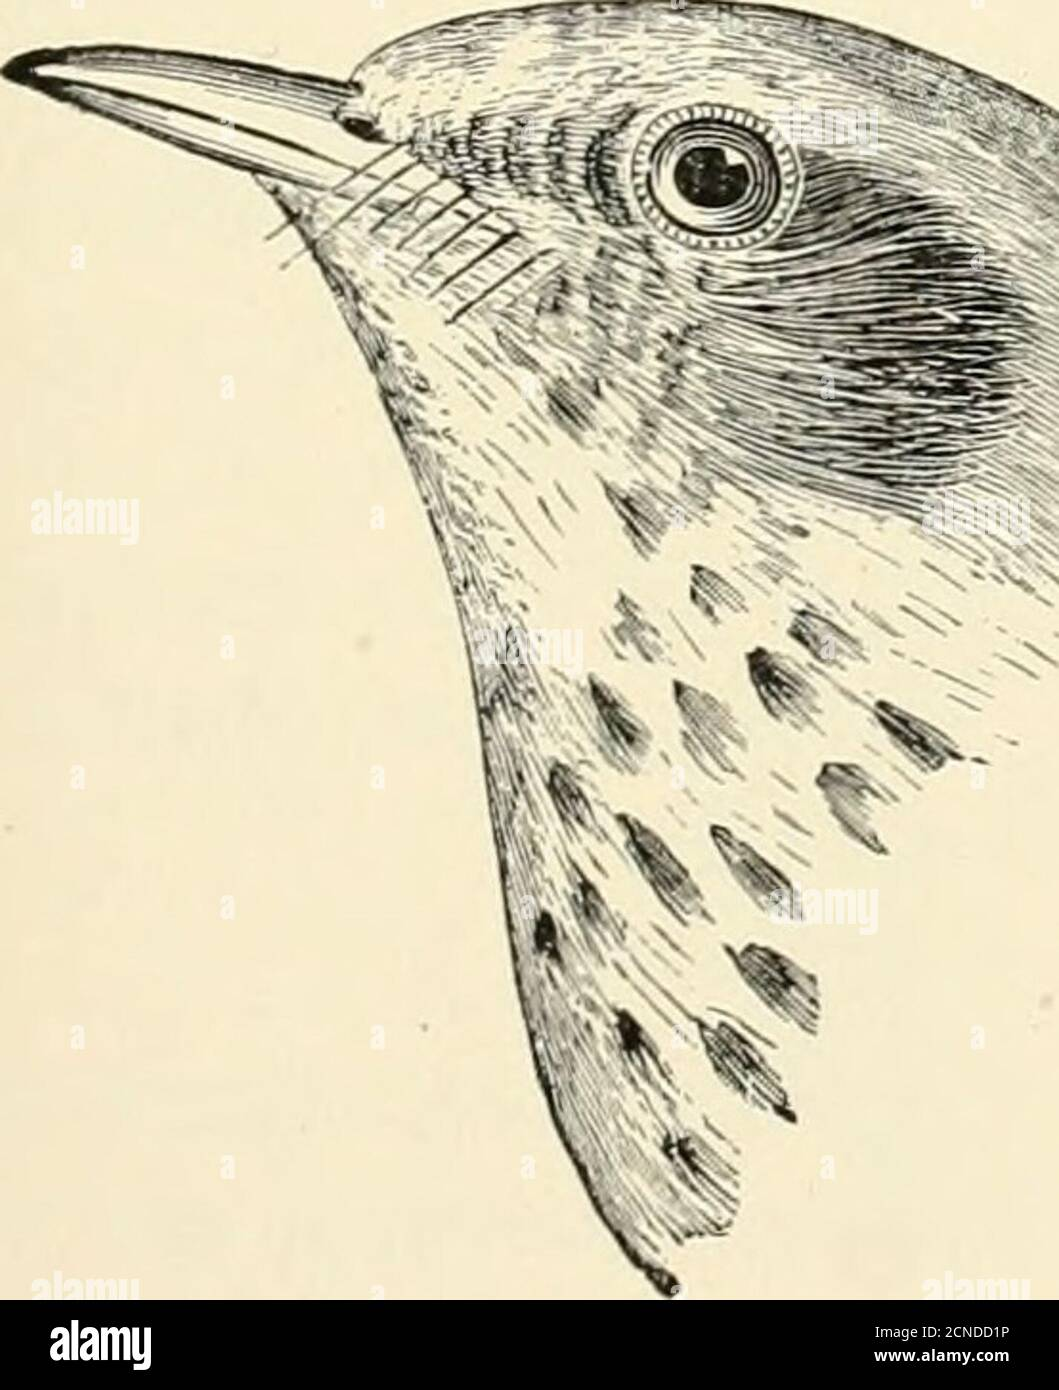 . The birds of Illinois and Wisconsin . , especially, it would seem, in the western part of the state.(Birds of Wisconsin, 1903, p. 126.) Its song is similar to that of the Wilsons Thrush. 361. Hylocichla aliciae (Baird). Gray-cheeked Thrush. TUrdus alicicE Baird, ±. O. U. Check List, 1895, p. 317.Distr.: Northern and eastern North America, breeding far north-ward (Newfoundland, Labrador, Mackenzie region, Alaska, etc.),migrating south, east of the Rocky Mountains to the Greater itilles,Central America, and northern South America. Adult: Upper parts, uniform olive, with little or no differenc Stock Photo